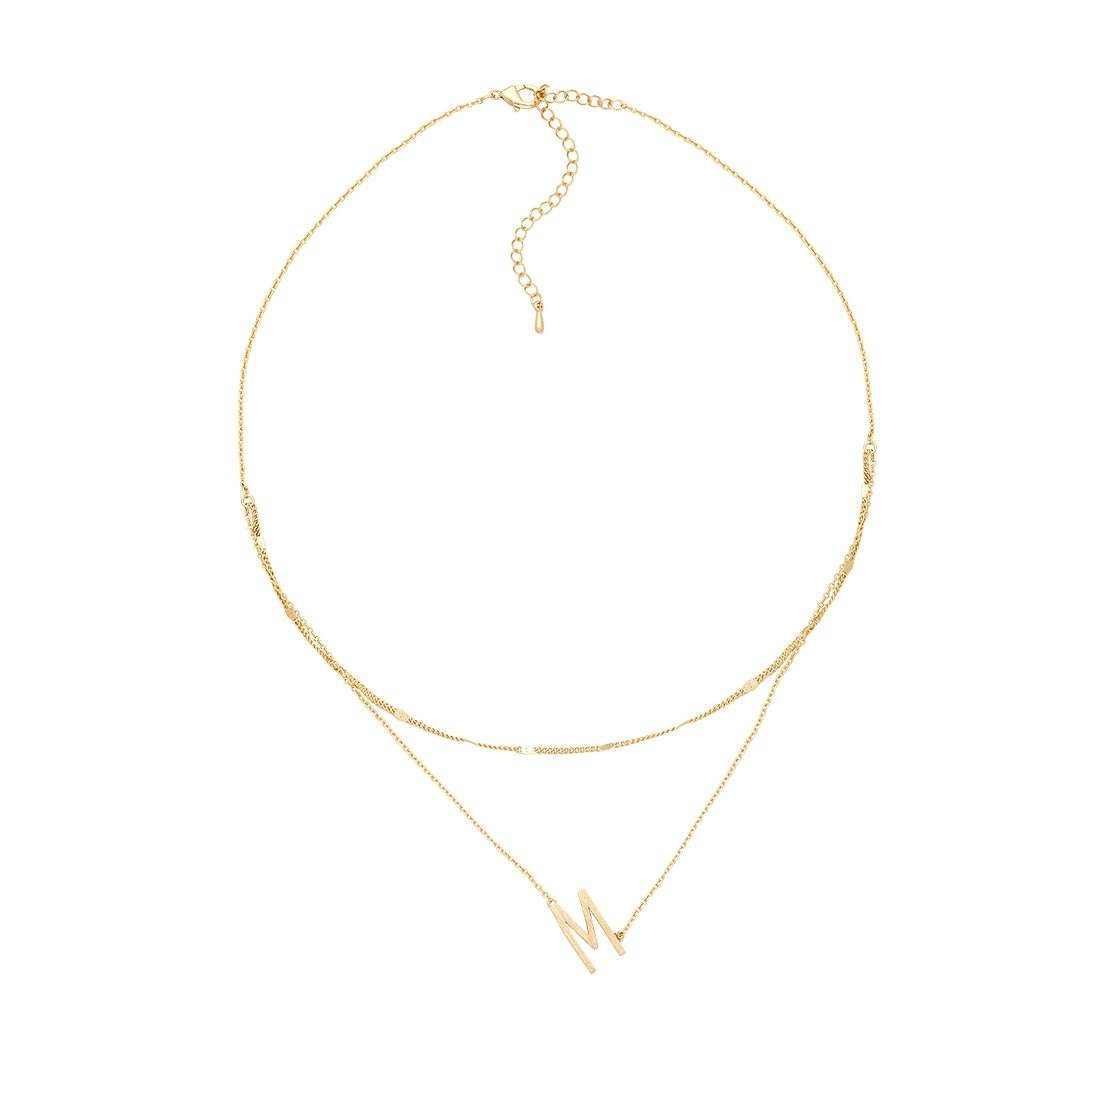 M Gold Double Chain Necklace